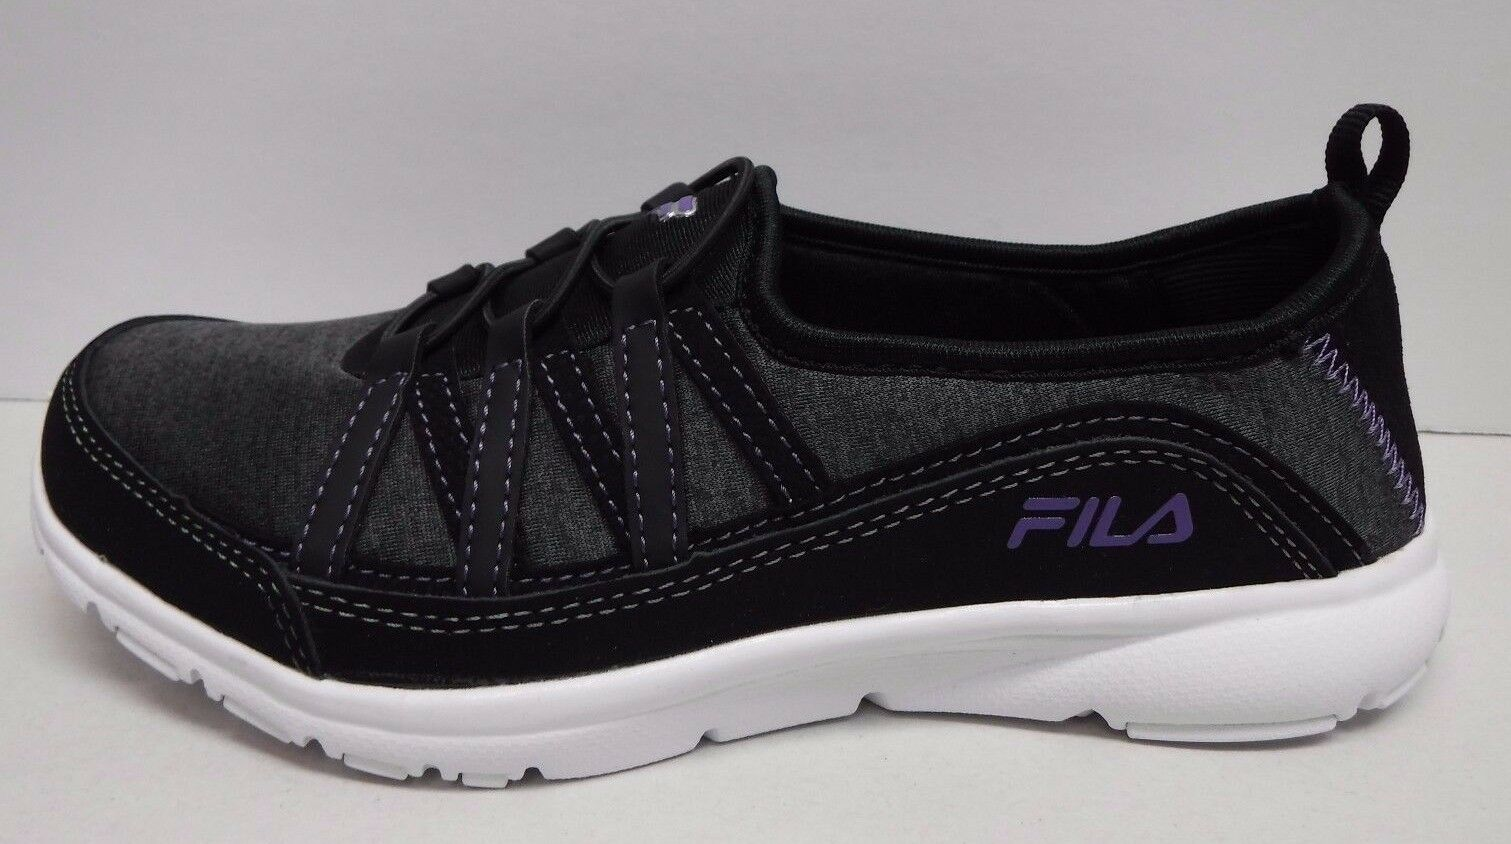 Fila Fila Fila Size 8 Black Memory Foam Breathable Slip On Sneakers New Womens shoes 1b4939